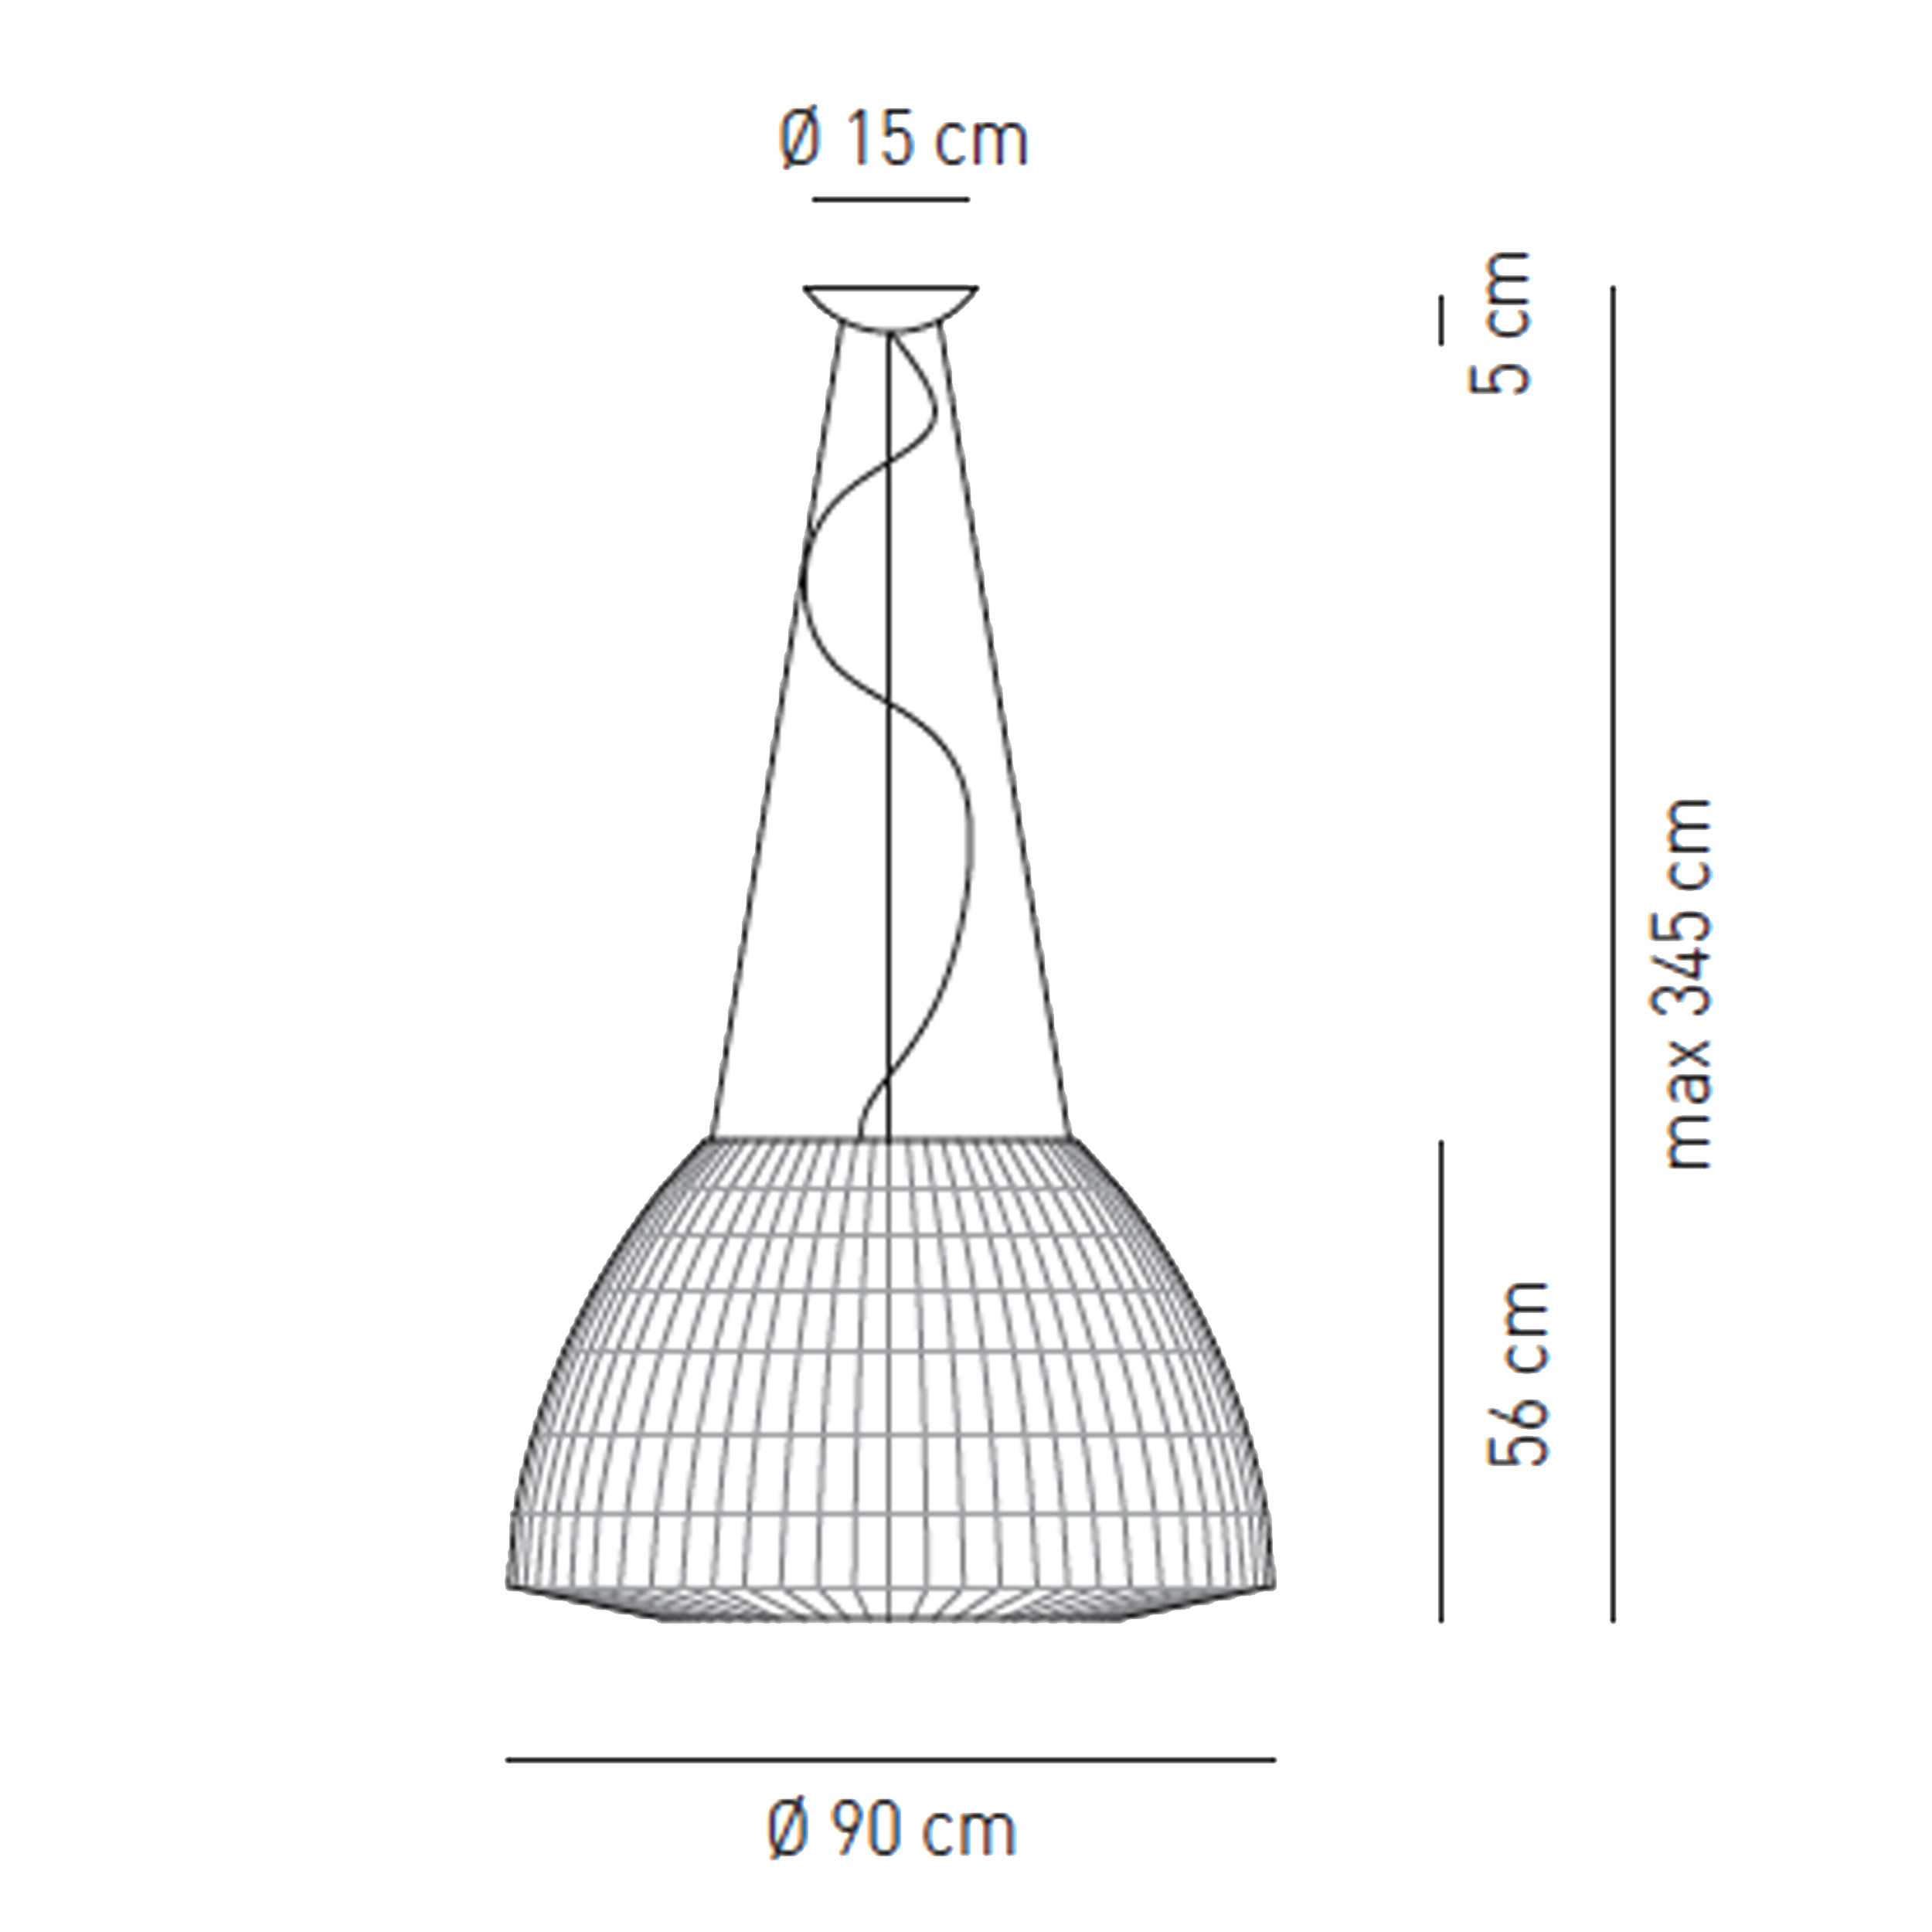 Axolight Bell 90 Pendant Light Line Drawing